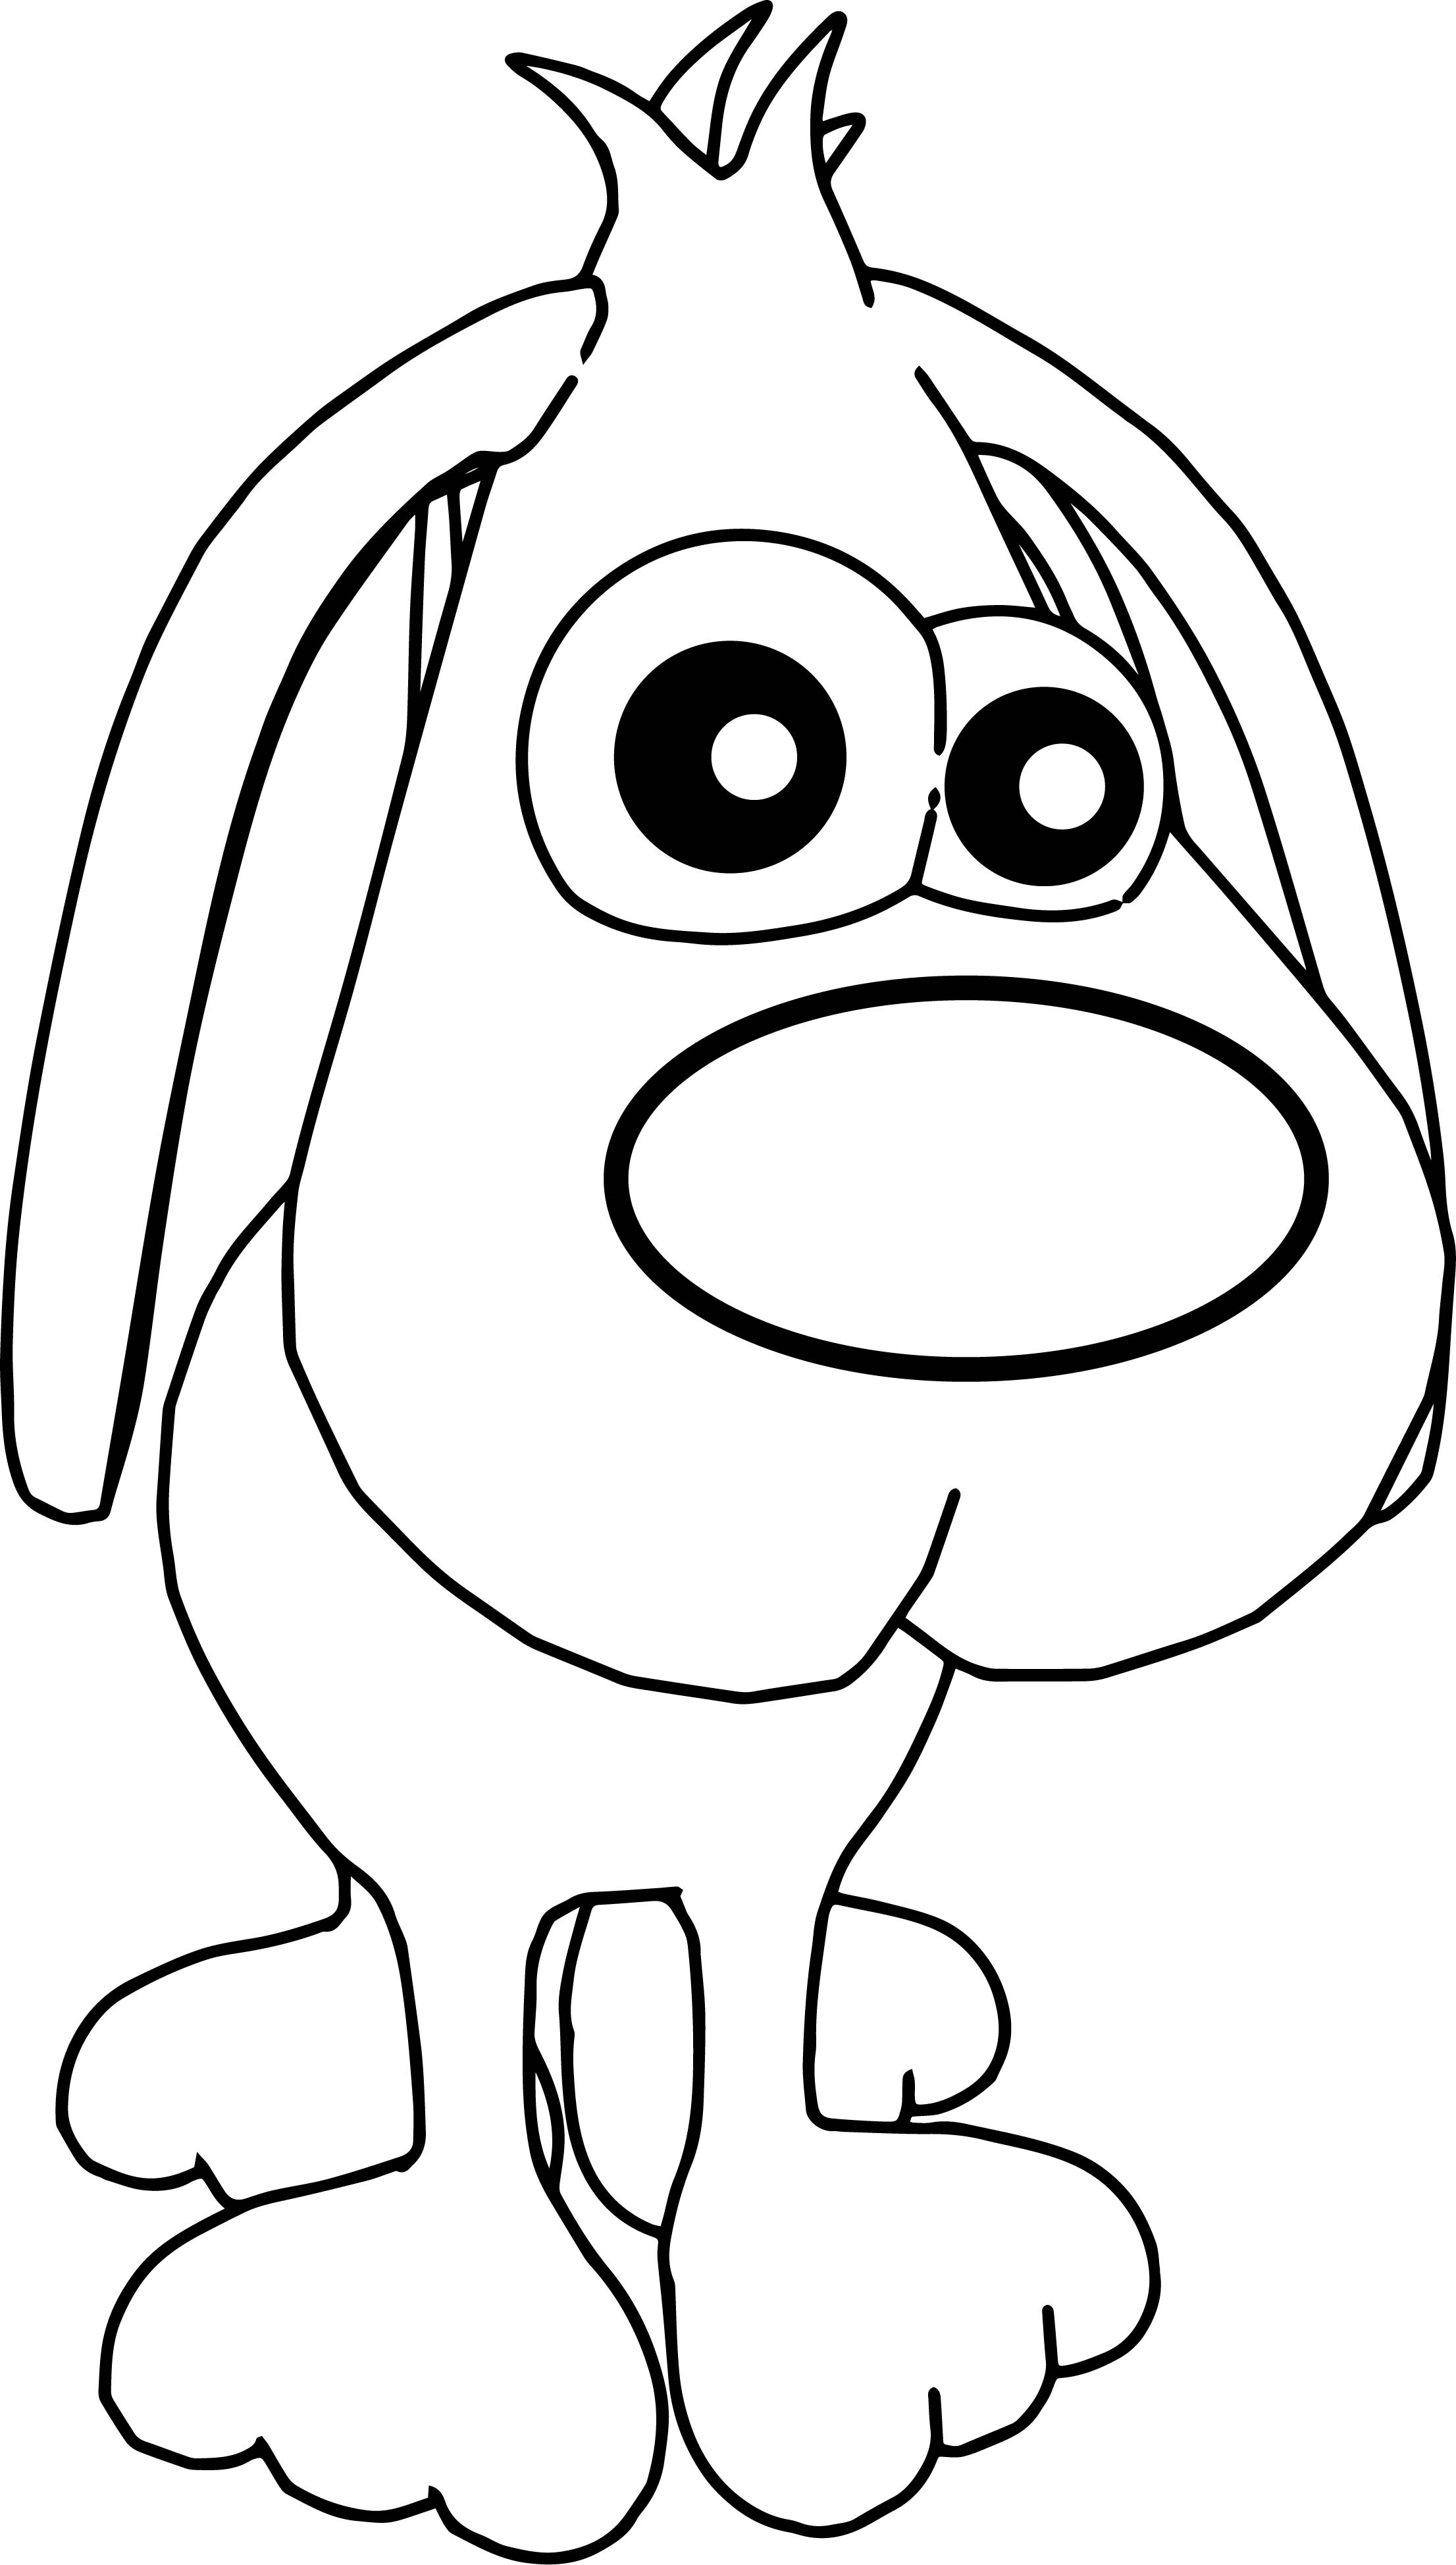 Cute dog face coloring pages for Cute cartoon coloring pages